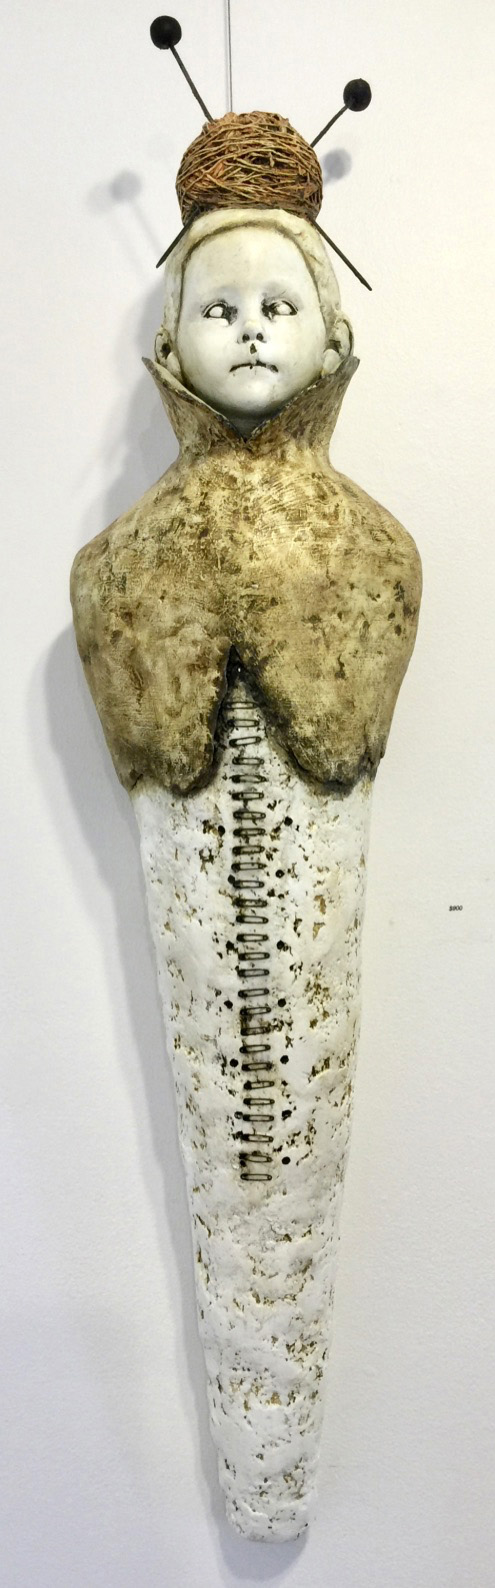 Kibibi (Little Ladie)   Plaster Wrap, Plaster, Cement, Modeling Compound, Clay, Cast Iron, Acrylic Paint and Medium, Found Objects  $900